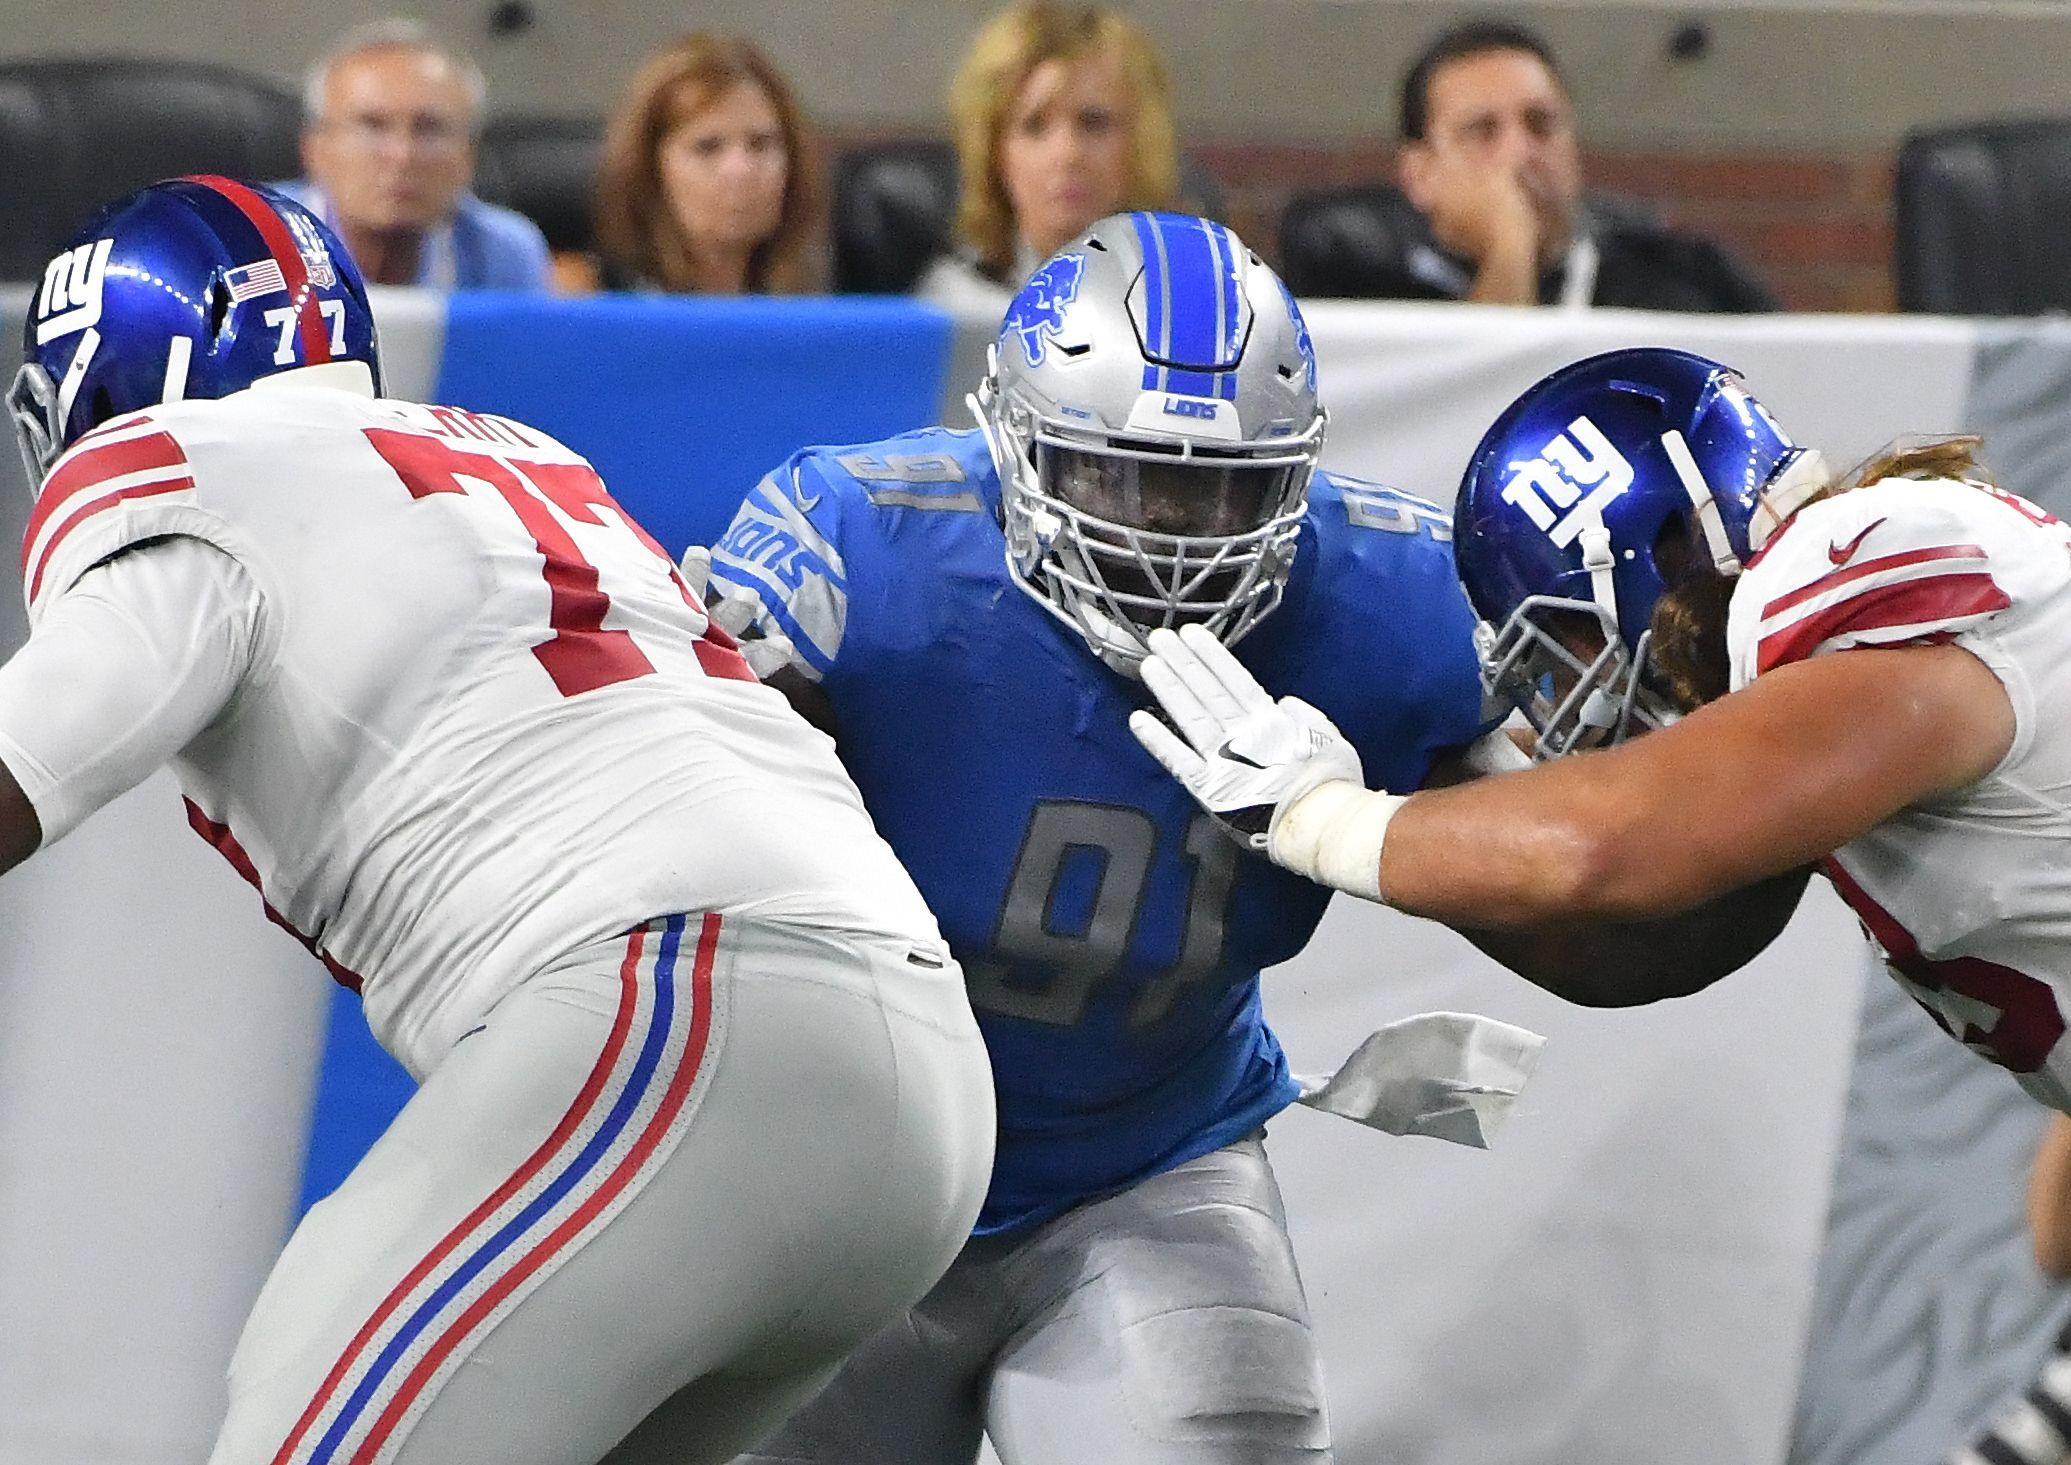 DT A'Shawn Robinson: A healthy scratch for the season opener, Robinson has largely played at high level since being reinserted into the lineup. He's been particularly good against the run, although teams have shown some signs to adjusting to his aggressiveness. The Vikings ran right at him for a 70-yard gain on Sunday. Grade: B+